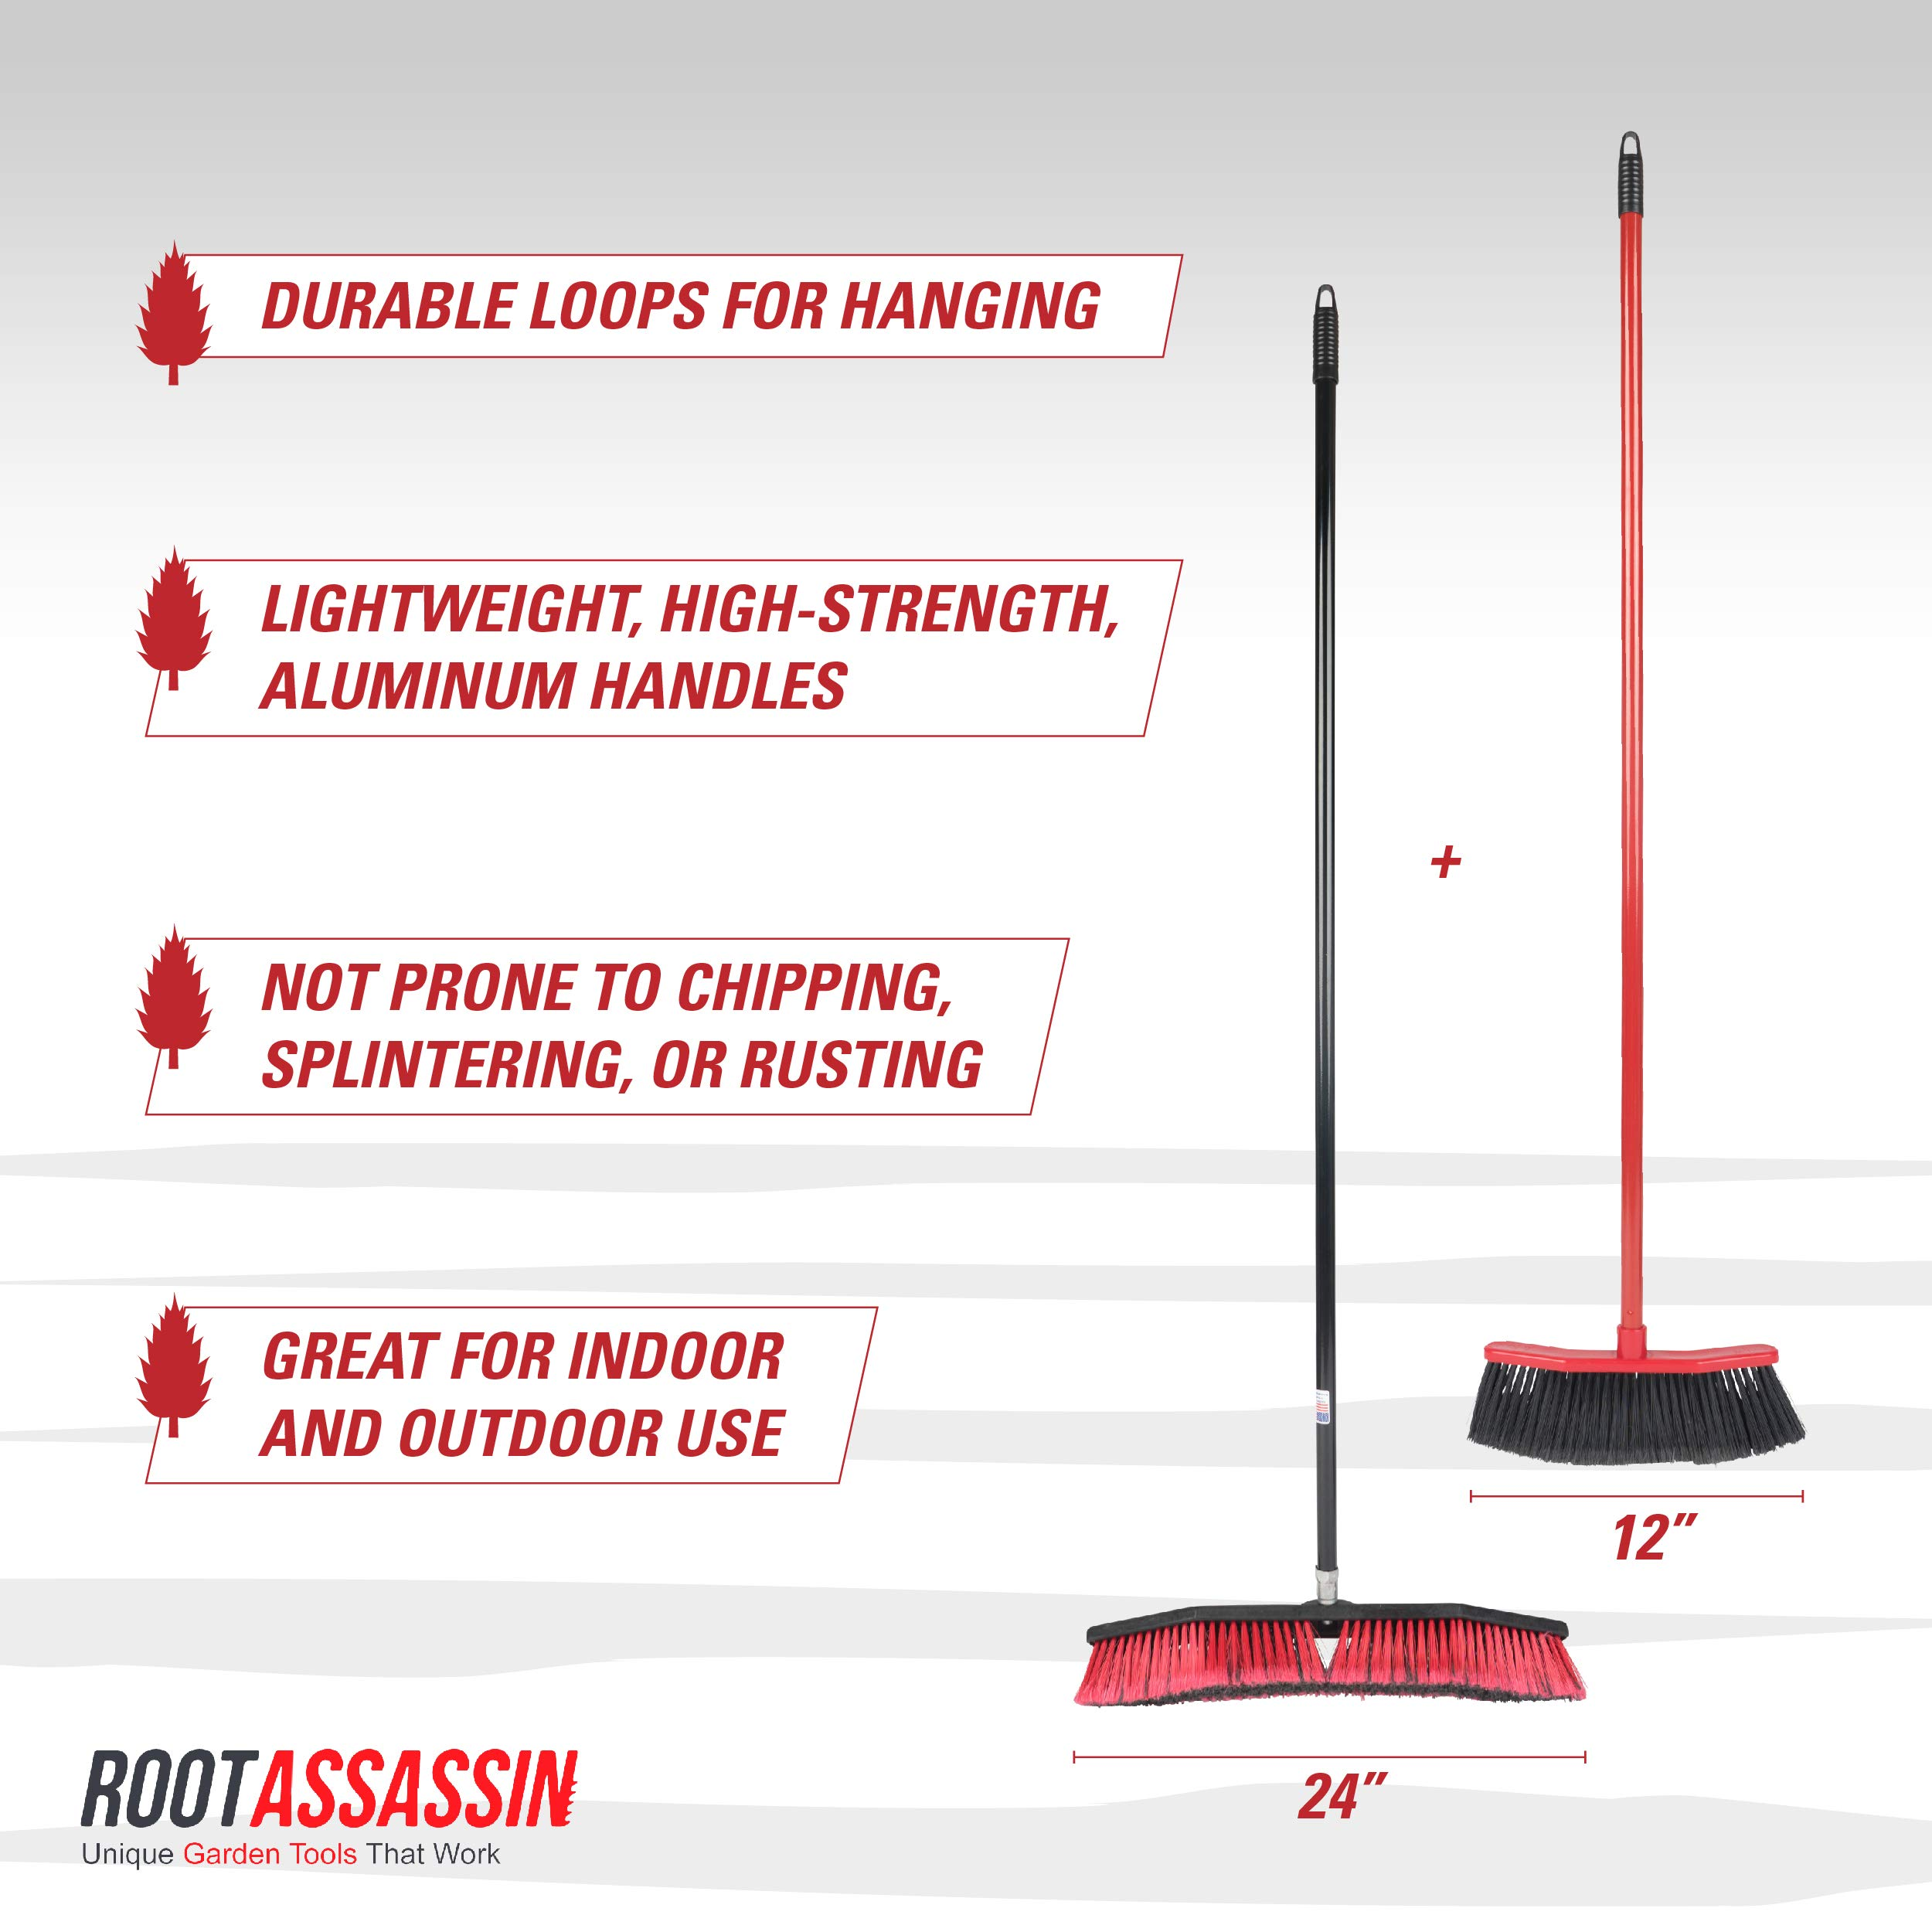 ROOT ASSASSIN House Broom & Push Broom, Keeps Debris Inside Broom, Best for Sweeping Kitchen Floors, Patios, Garages, Shops, Tile, Large Areas, and Wood Floors. Durable, Large, Light (Combo Pack) by ROOT ASSASSIN (Image #3)